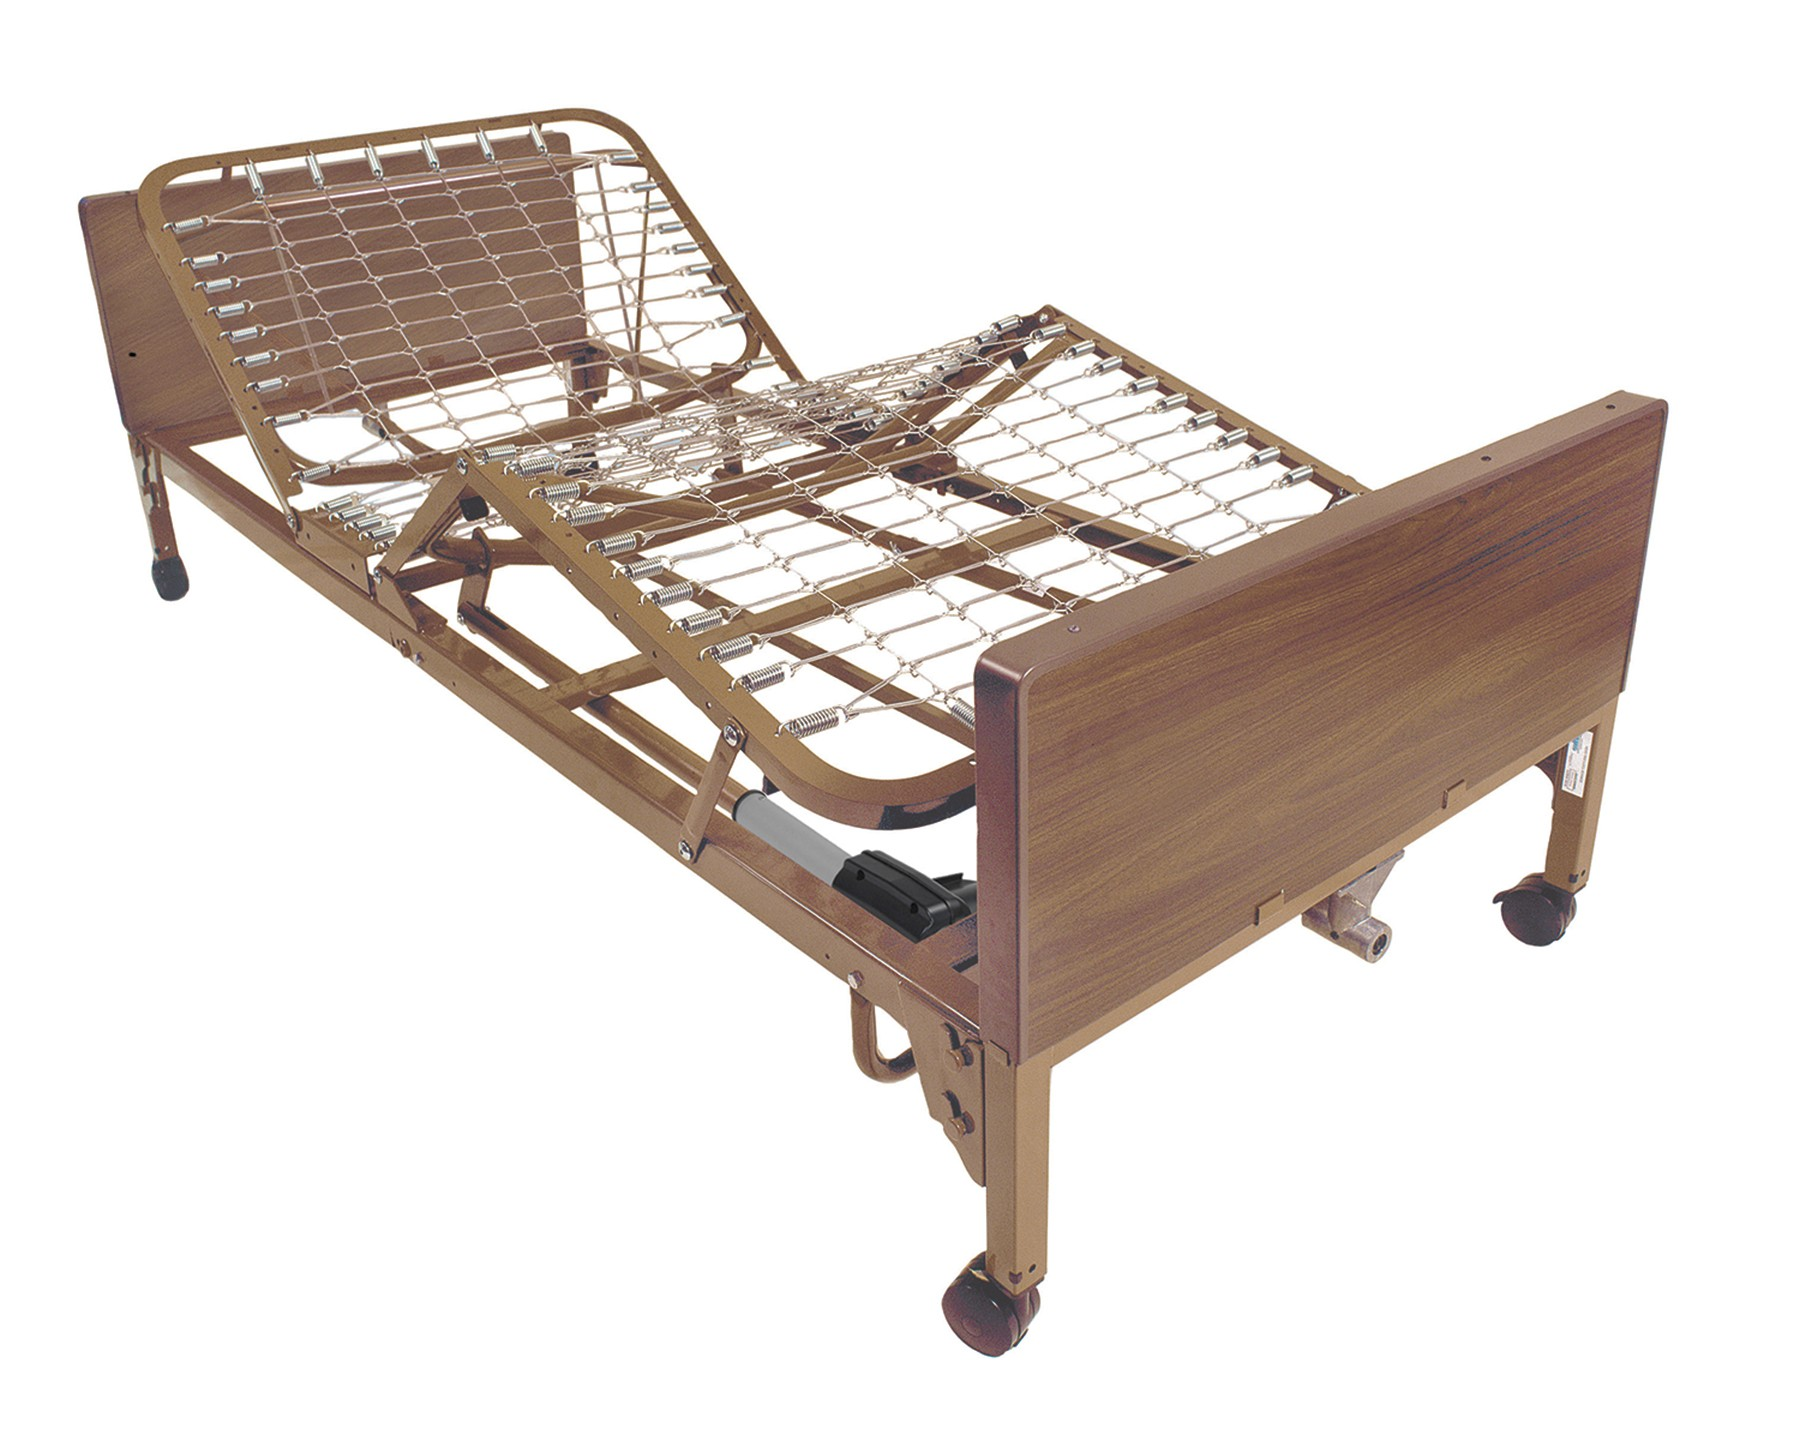 Houston tx affordable cost sale price electric hospital bariatric bed are motorized base foundation frame  drive medical hospital bed